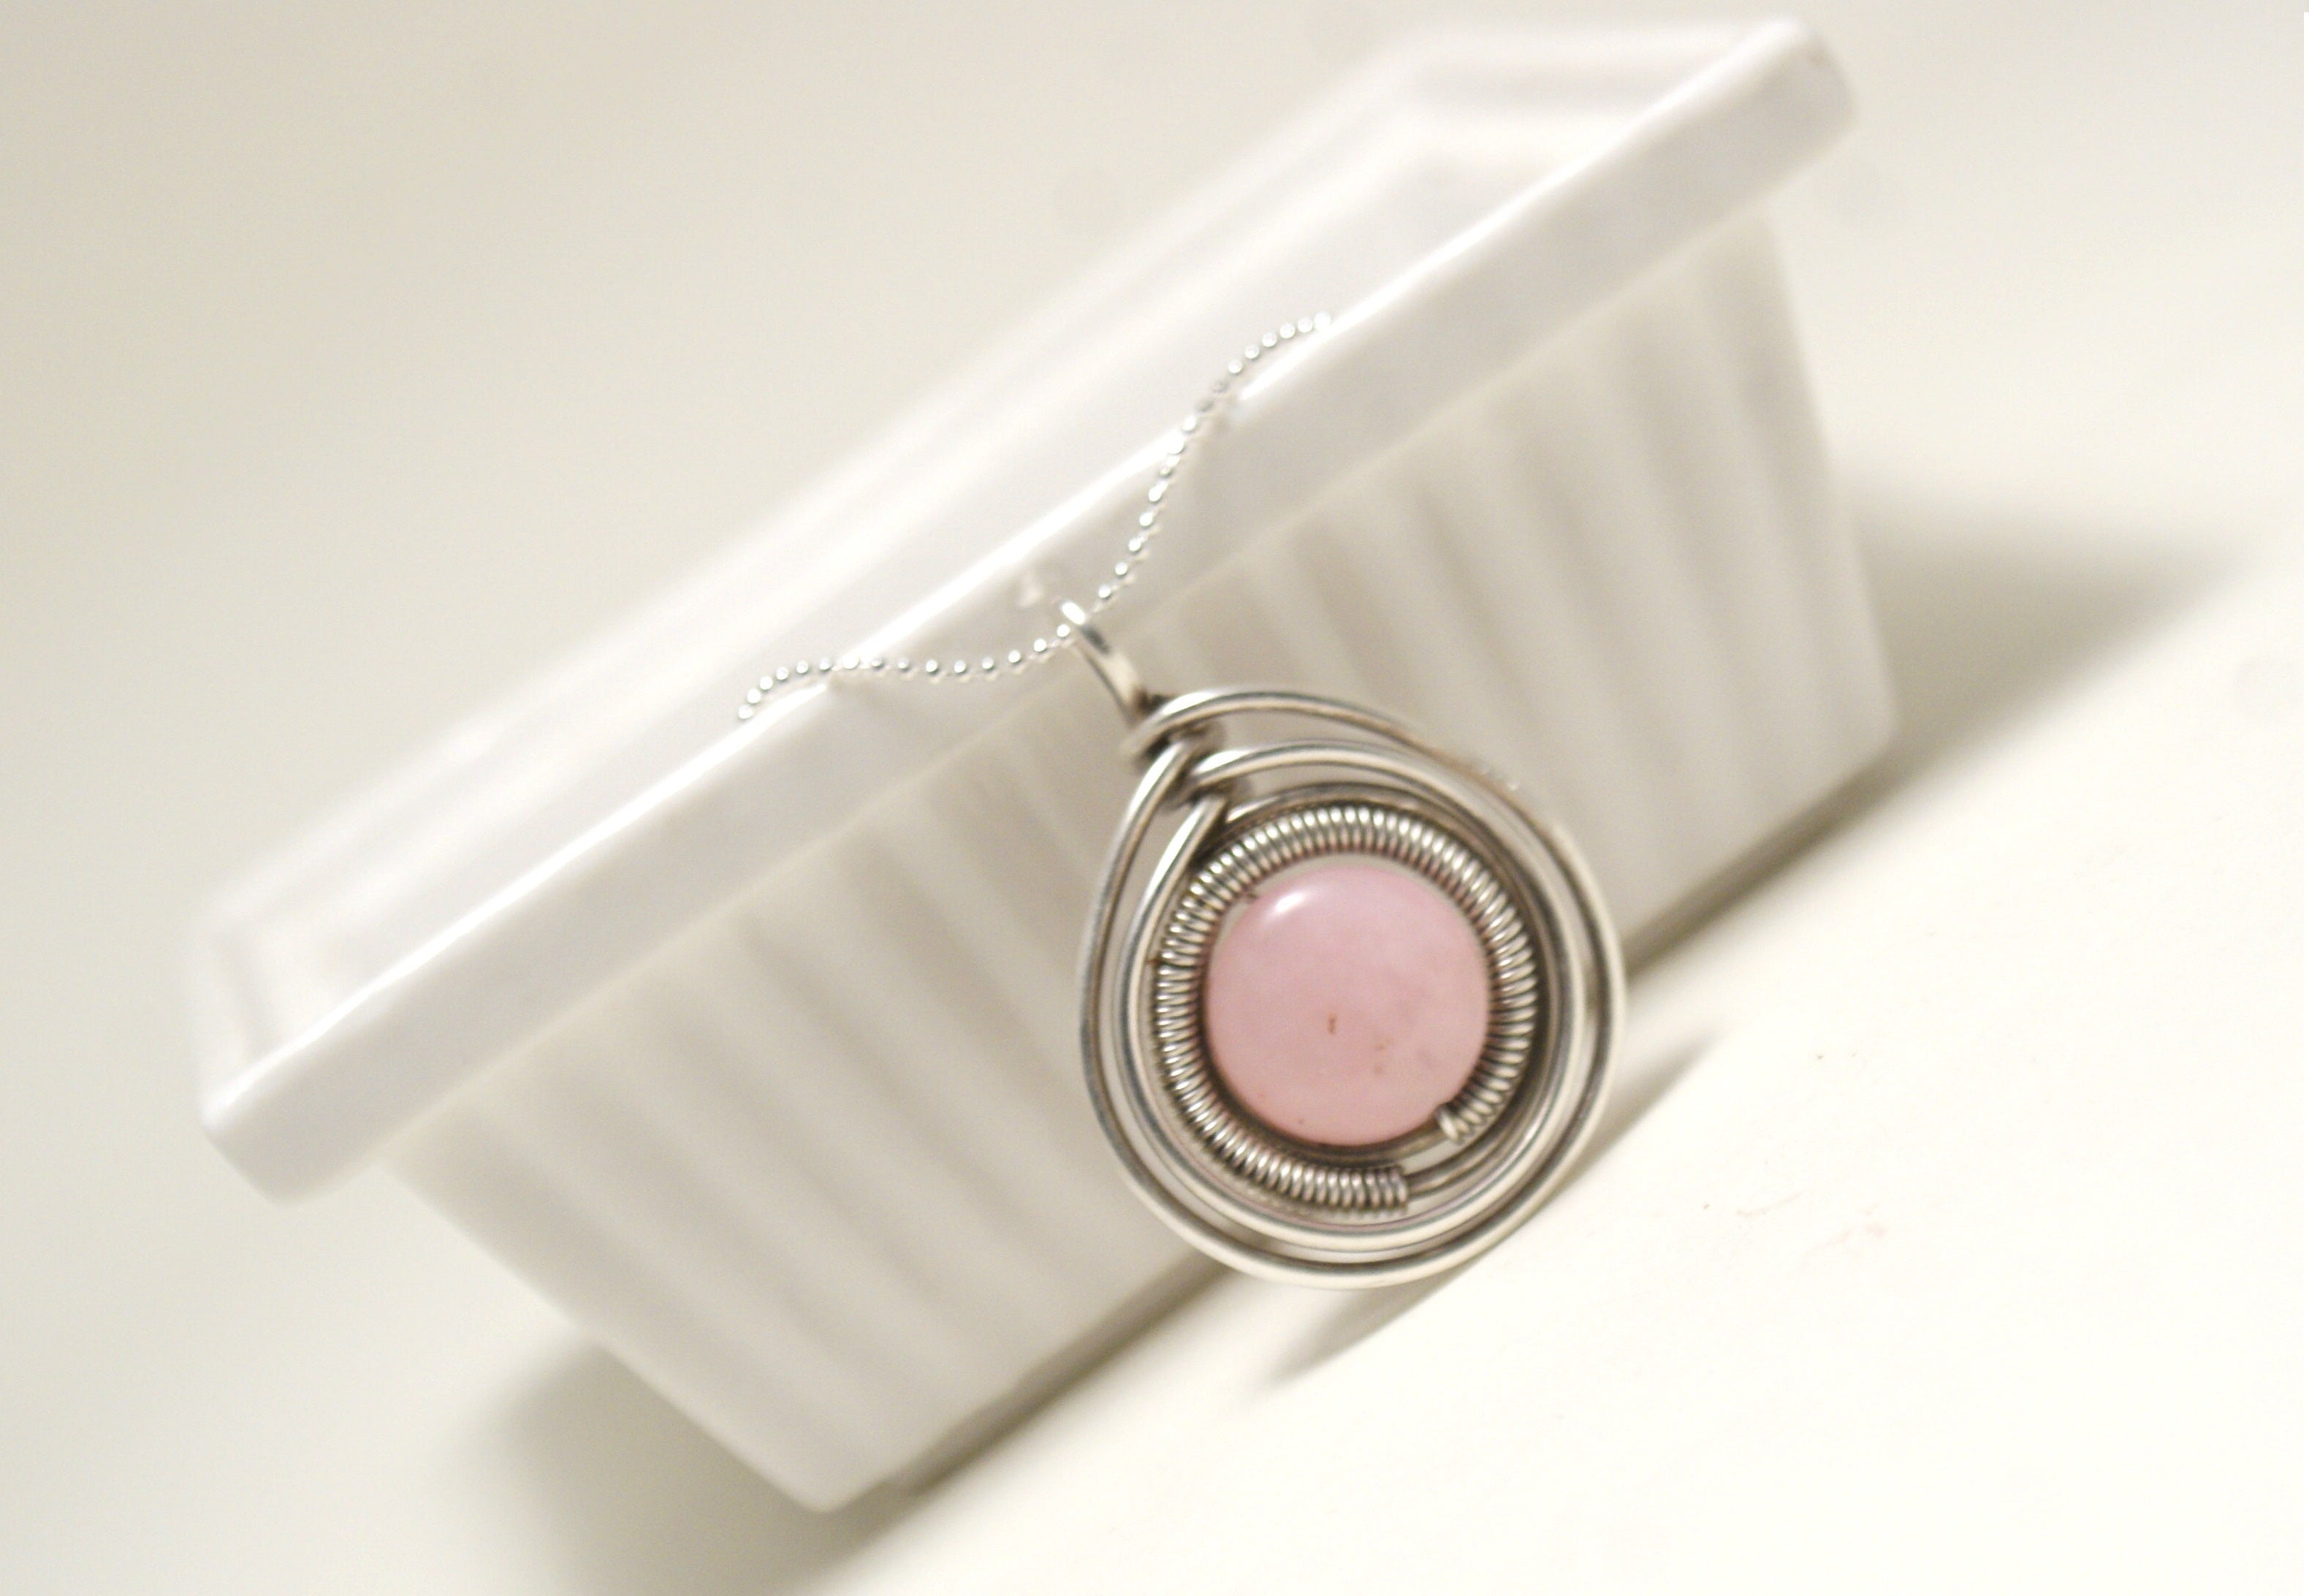 Handcrafted Rose Quartz Pendant Necklace, Artisan Jewelry Handmade - Babazen